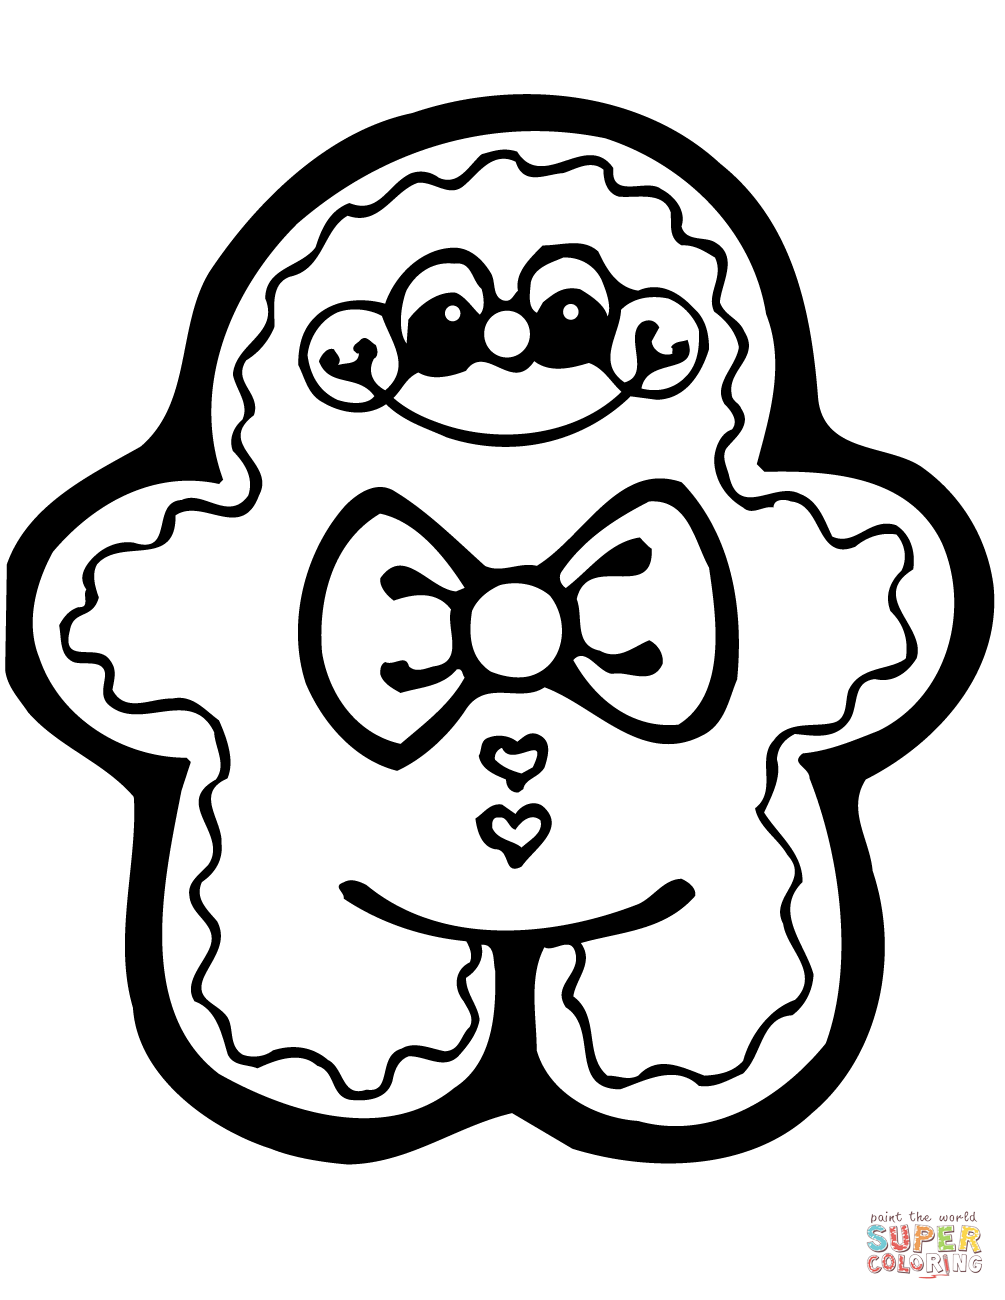 1005x1300 Bear Christmas Coloring Pages Online